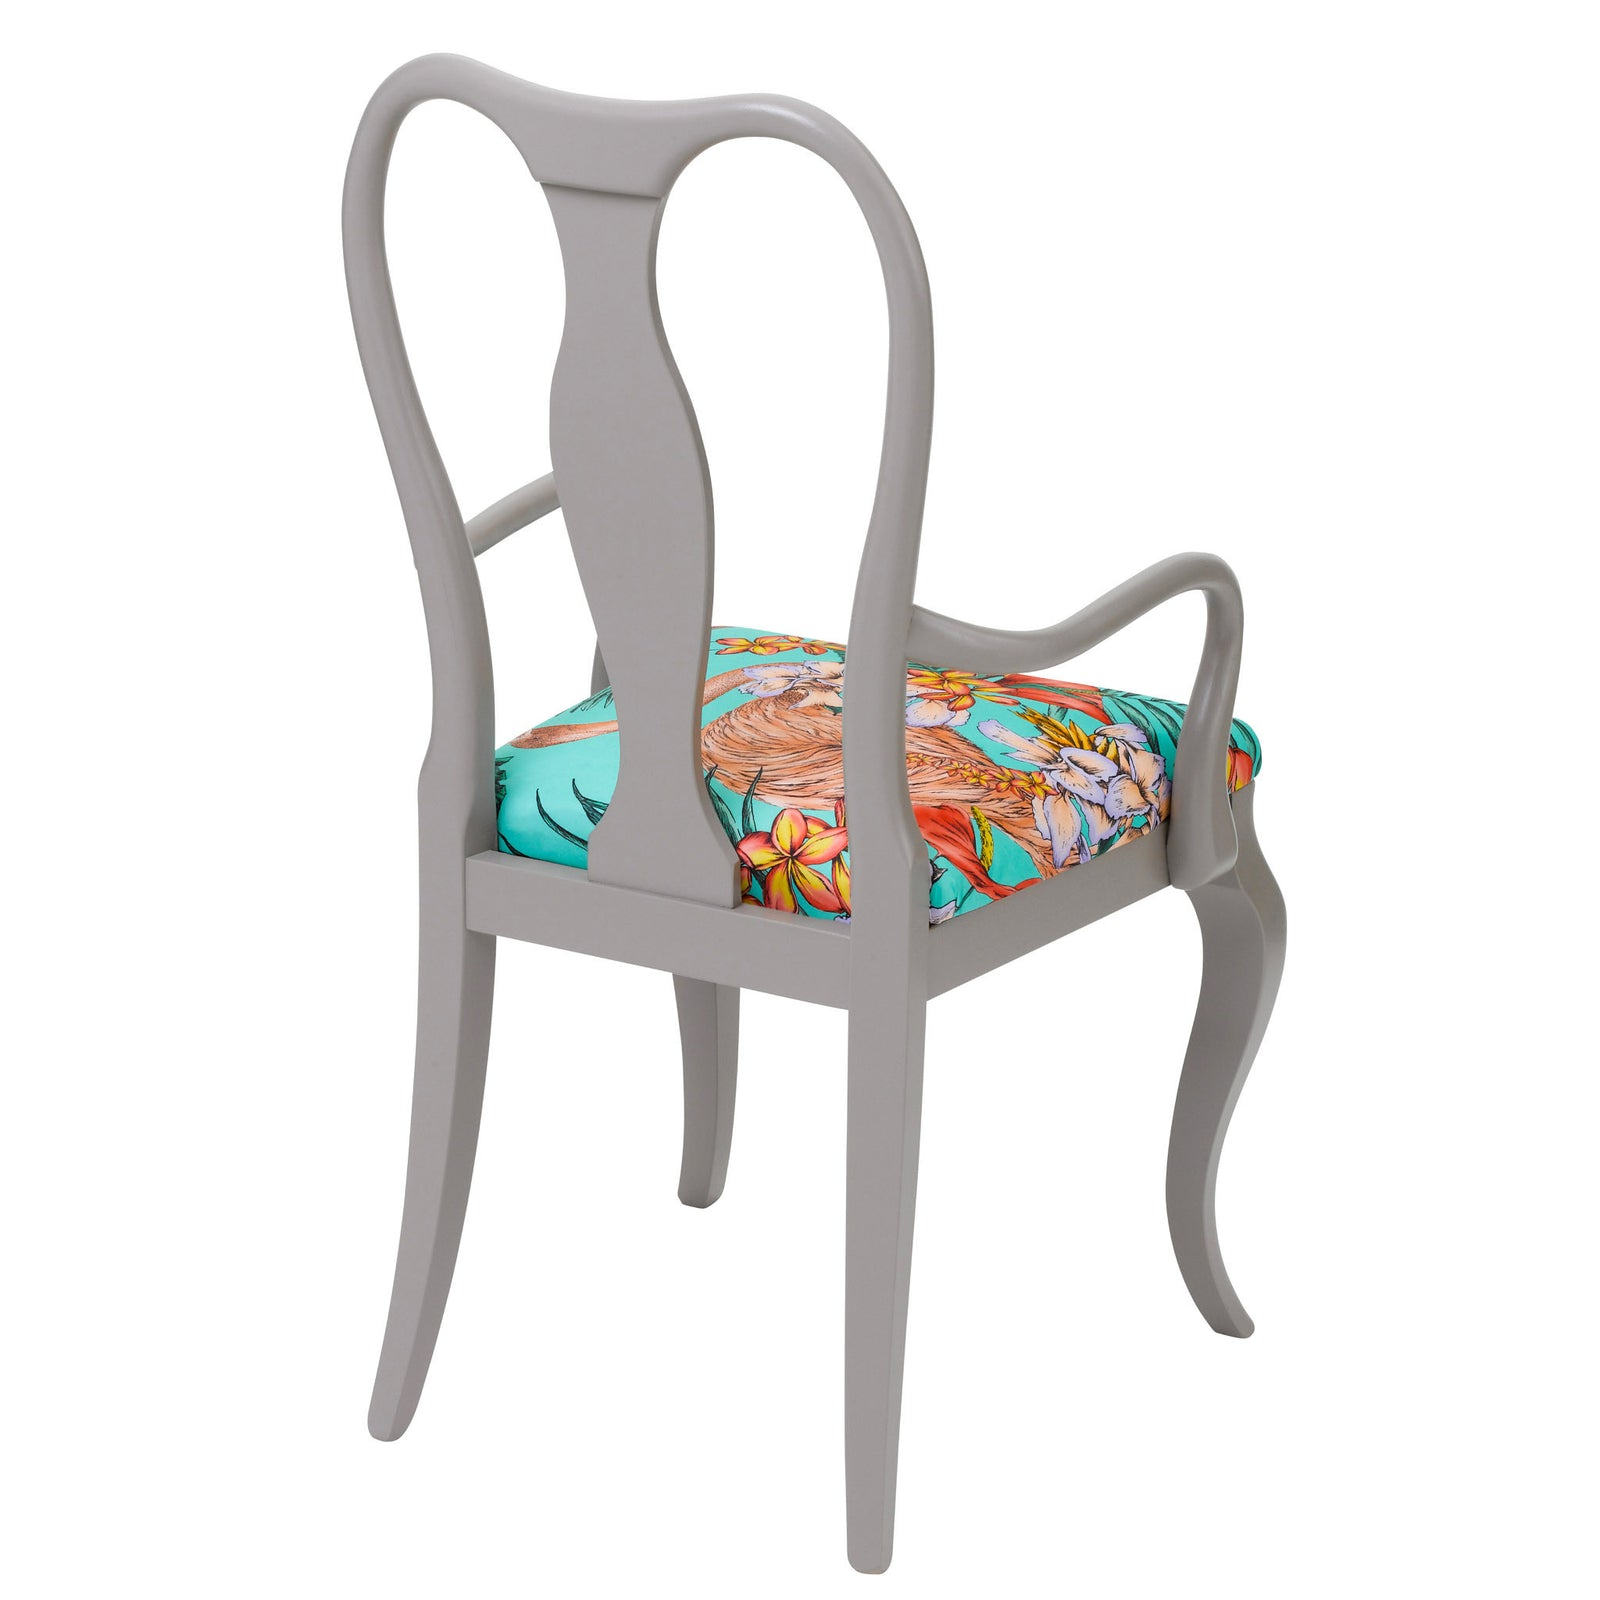 Rear view of the Fifi dining chair upholstered in Flamingo print finished in Grey paint.